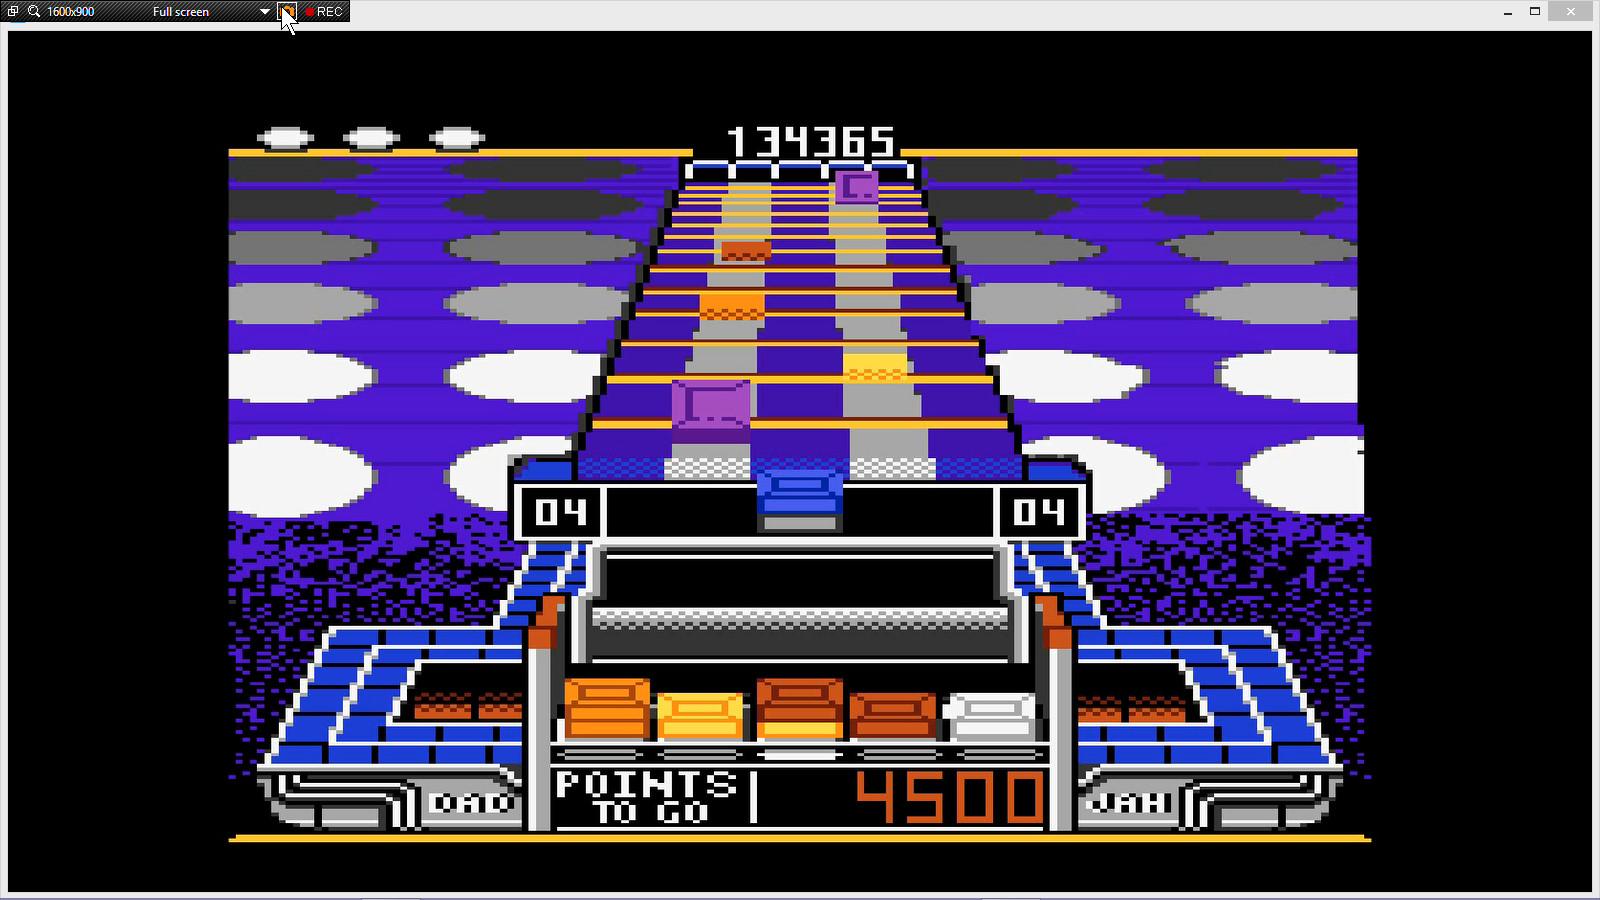 Klax: Normal [Level 01 Start] 134,365 points